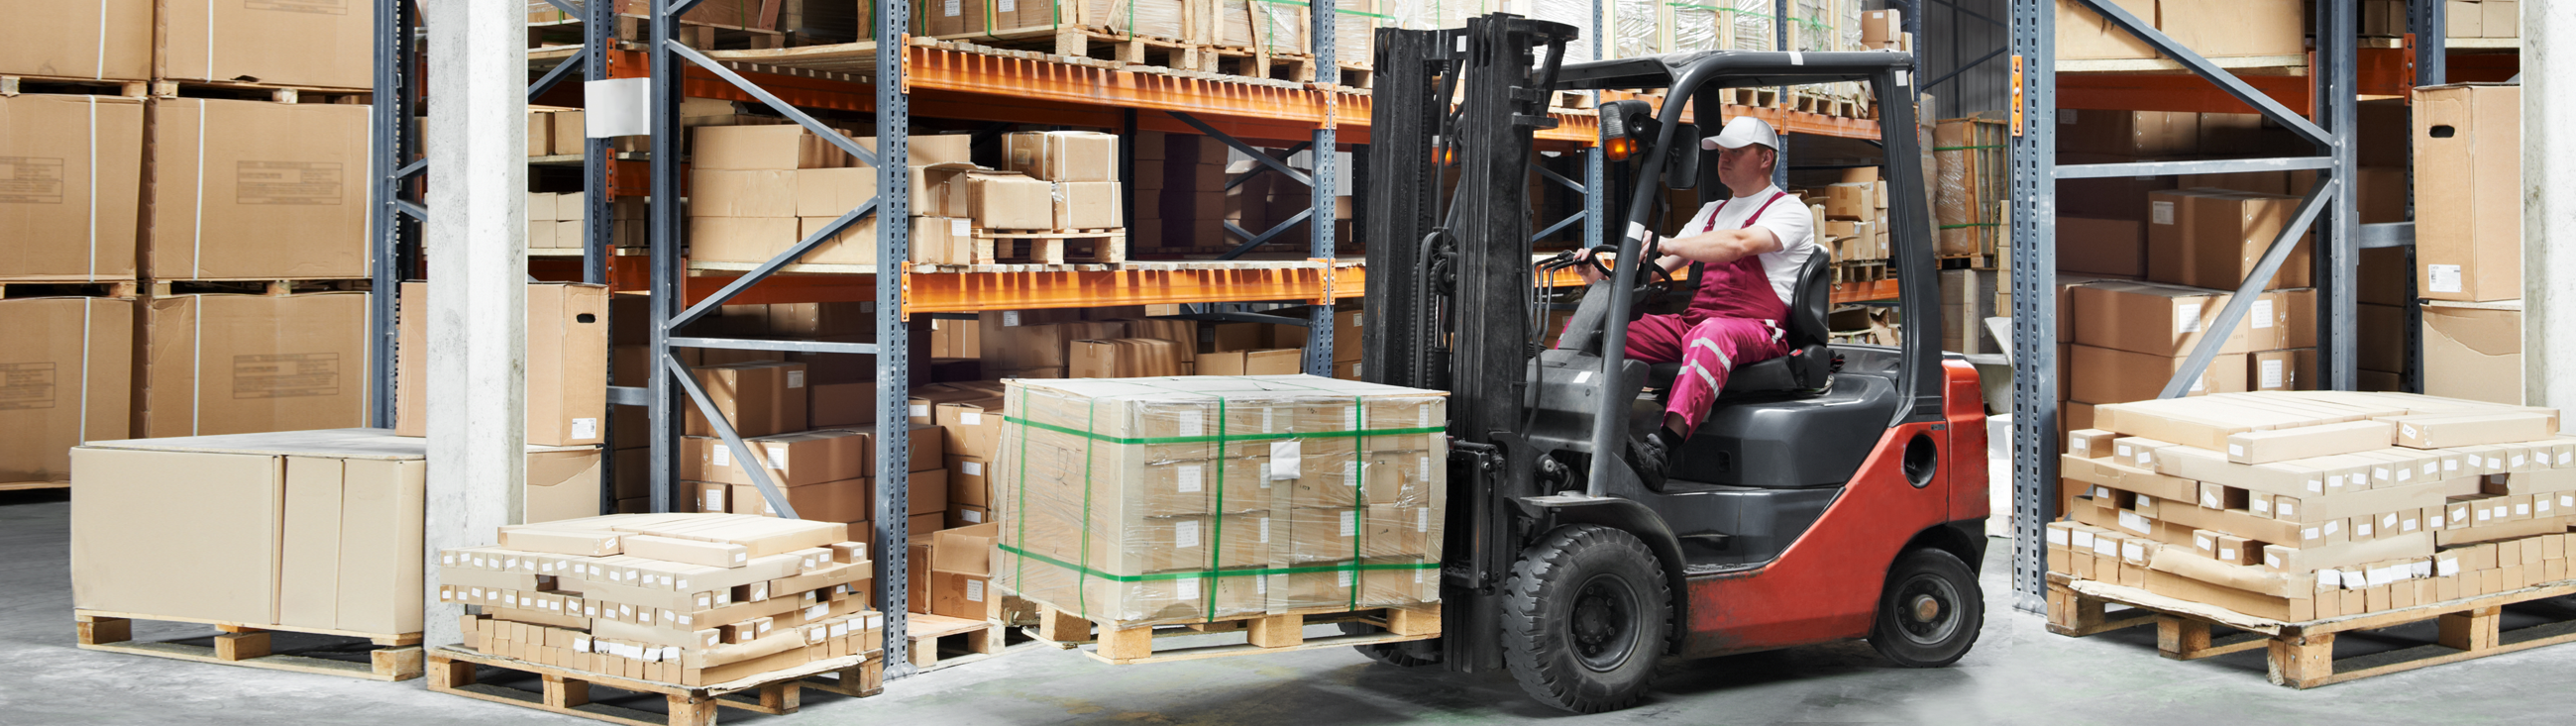 finance for fork lift trucks